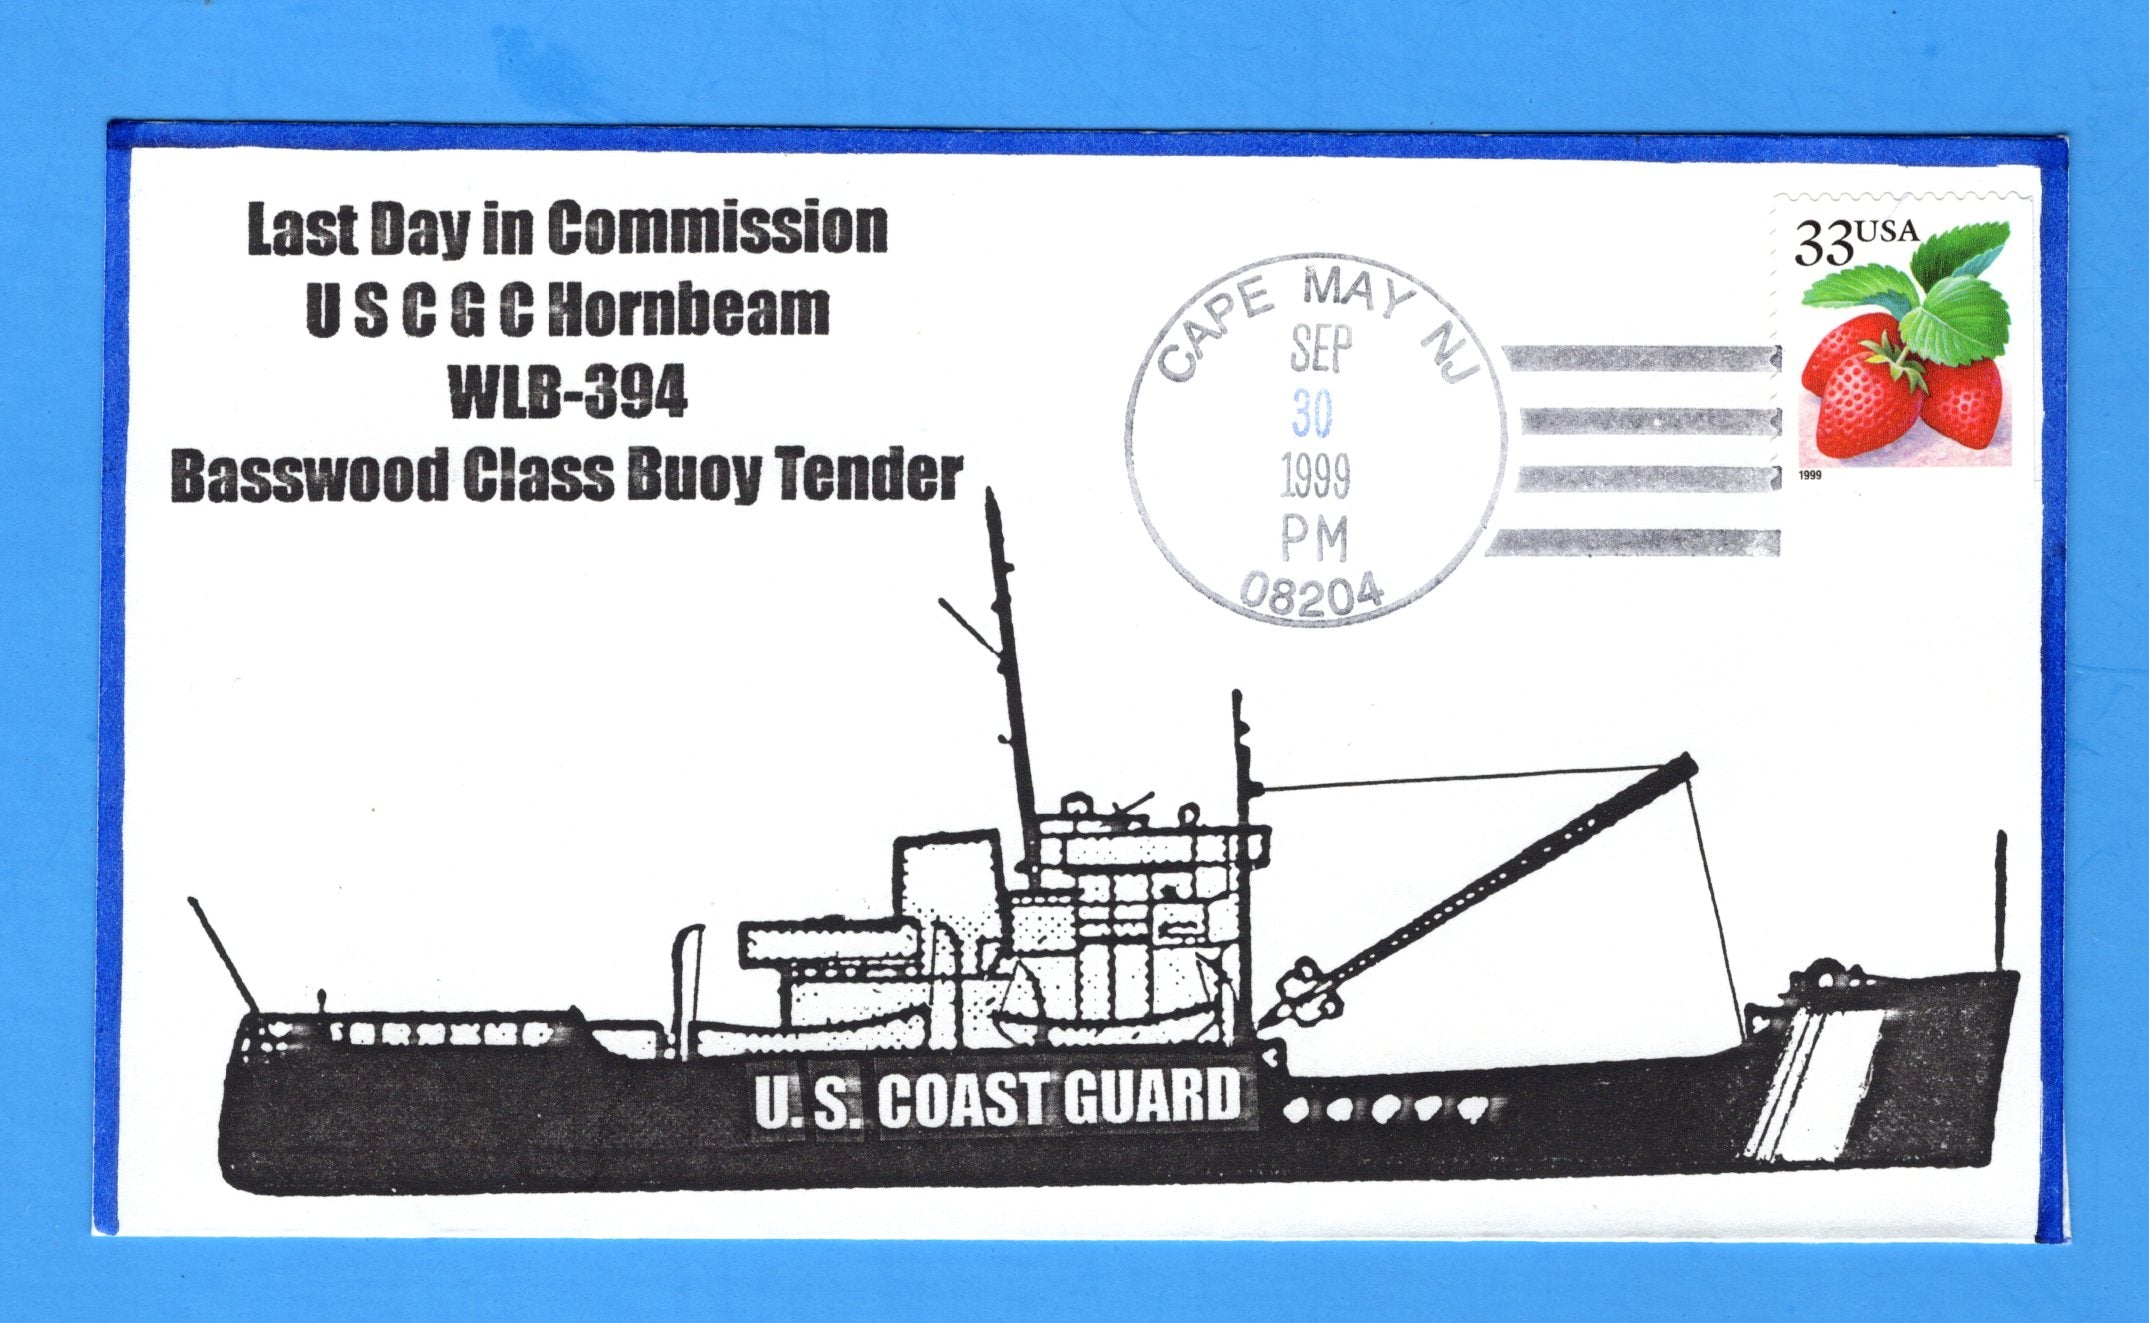 USCGC Hornbeam WLB-394 Last Day in Commission September 30, 1999 - Hand Drawn and Colored Cachet by Bill Everett